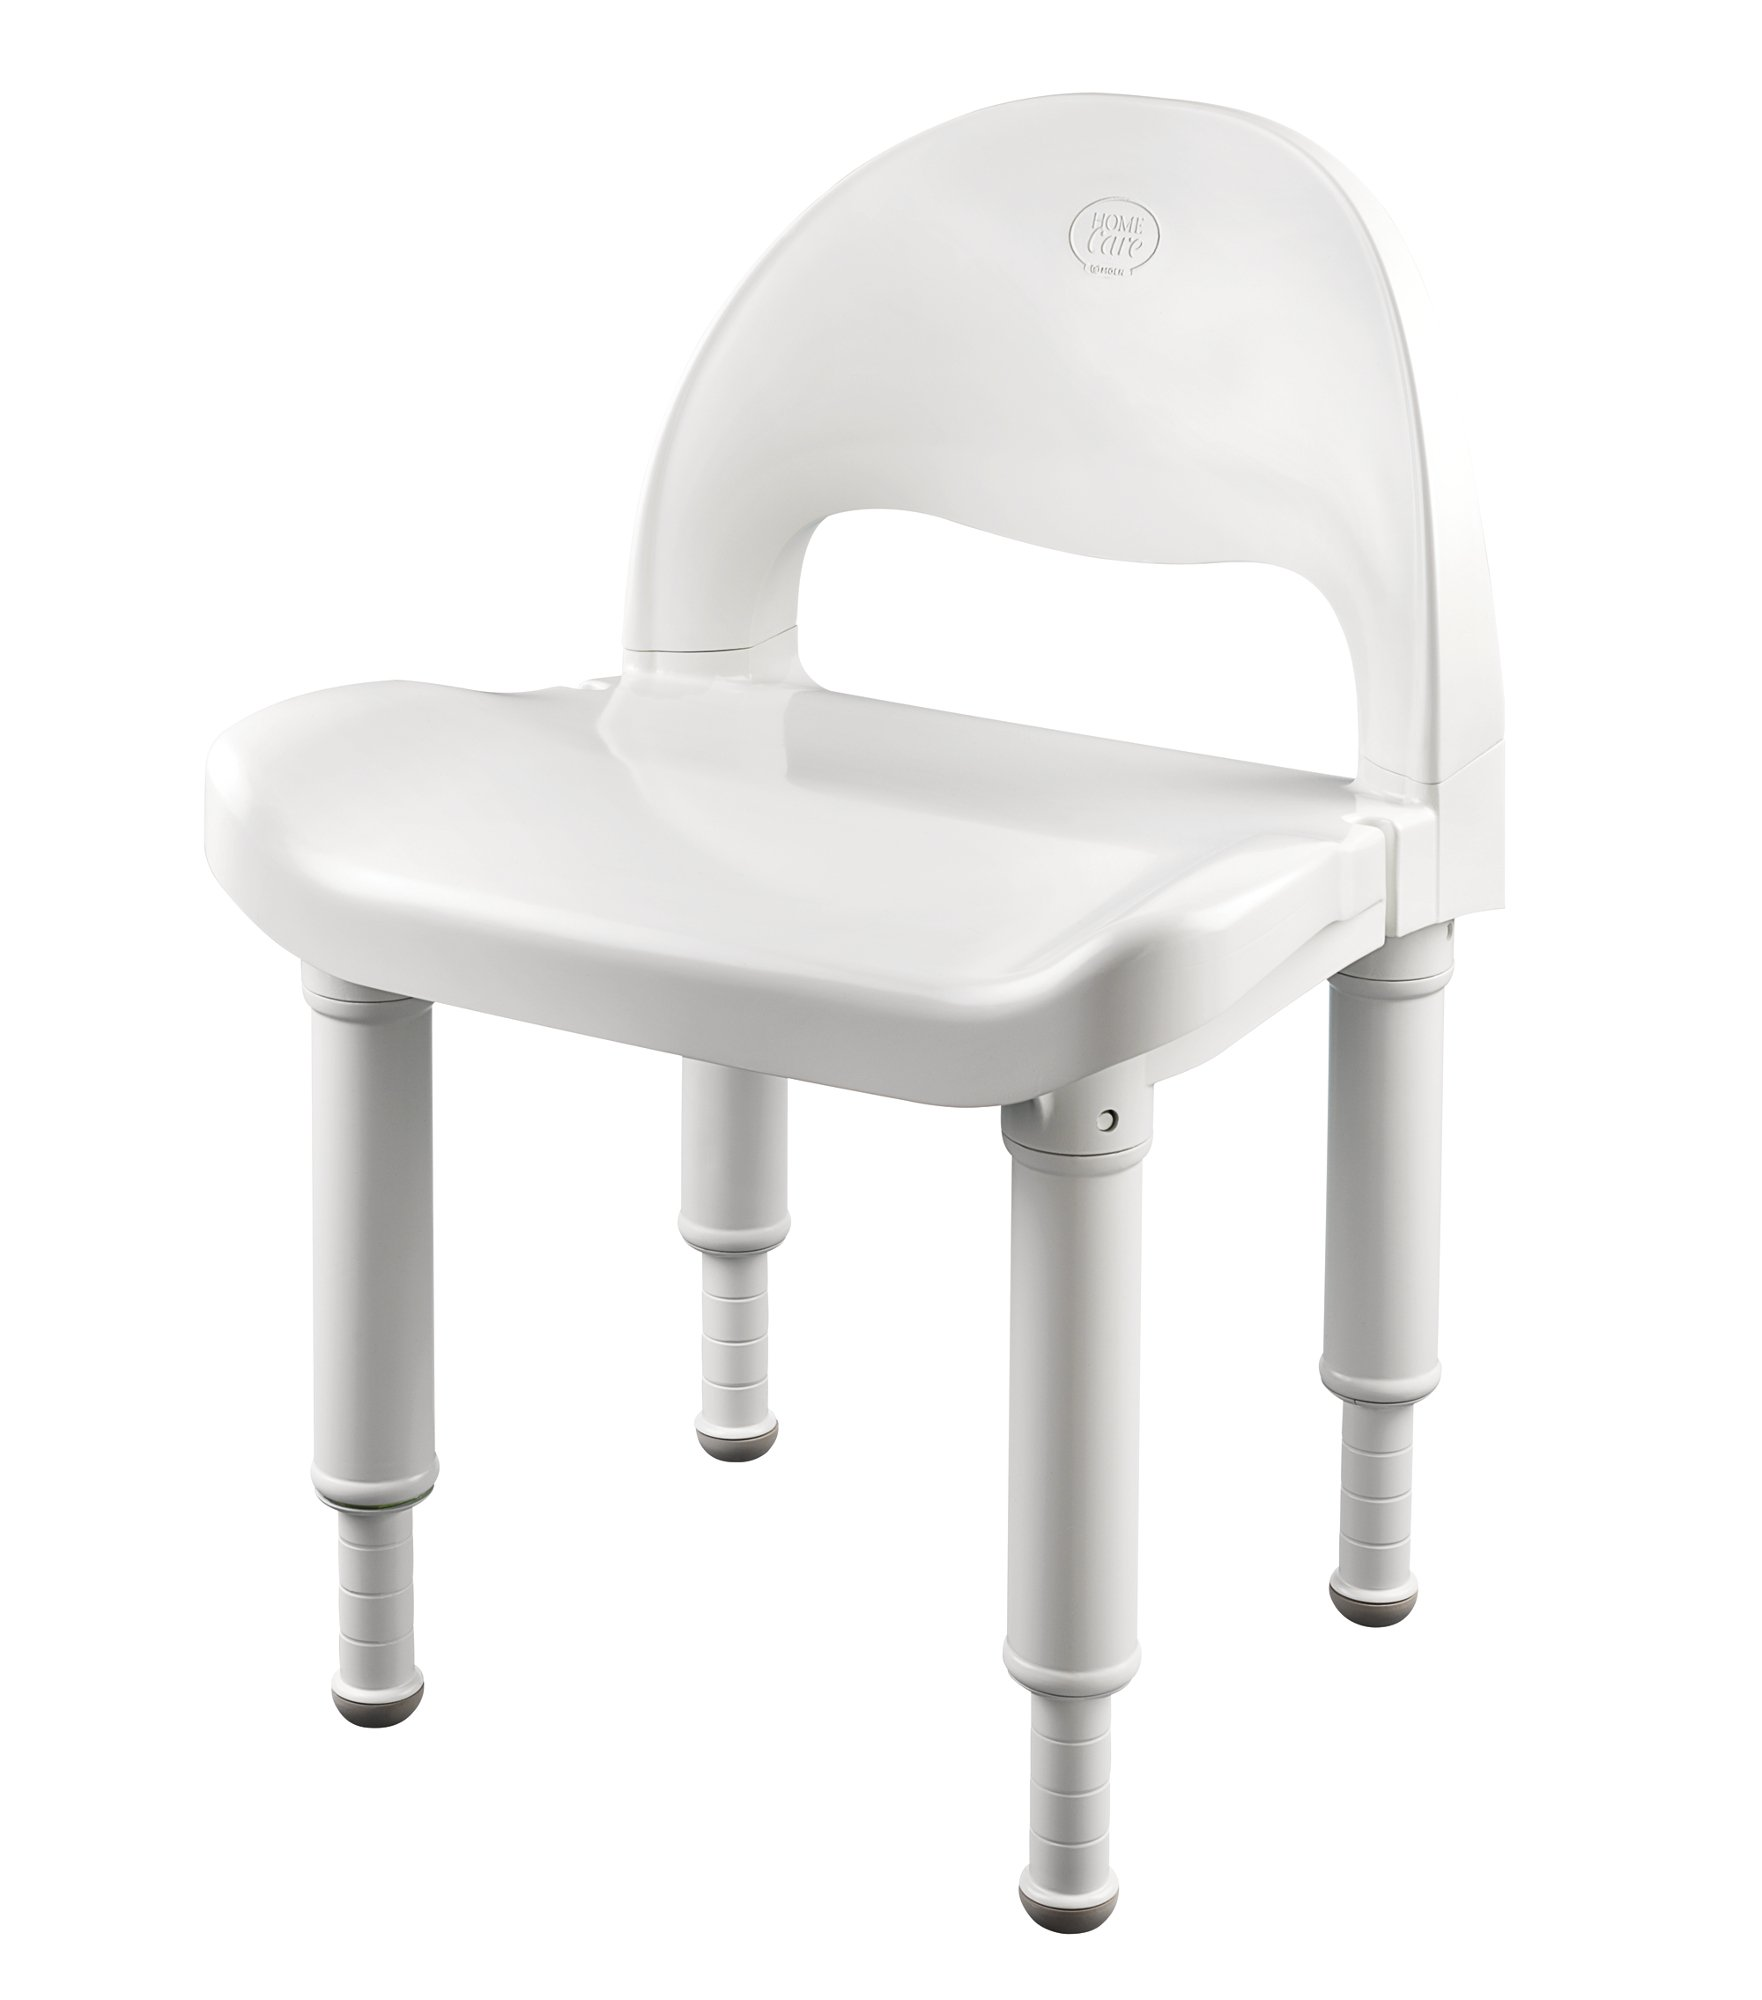 Moen DN7064 Bath Safety Shower Chair, Glacier by Moen